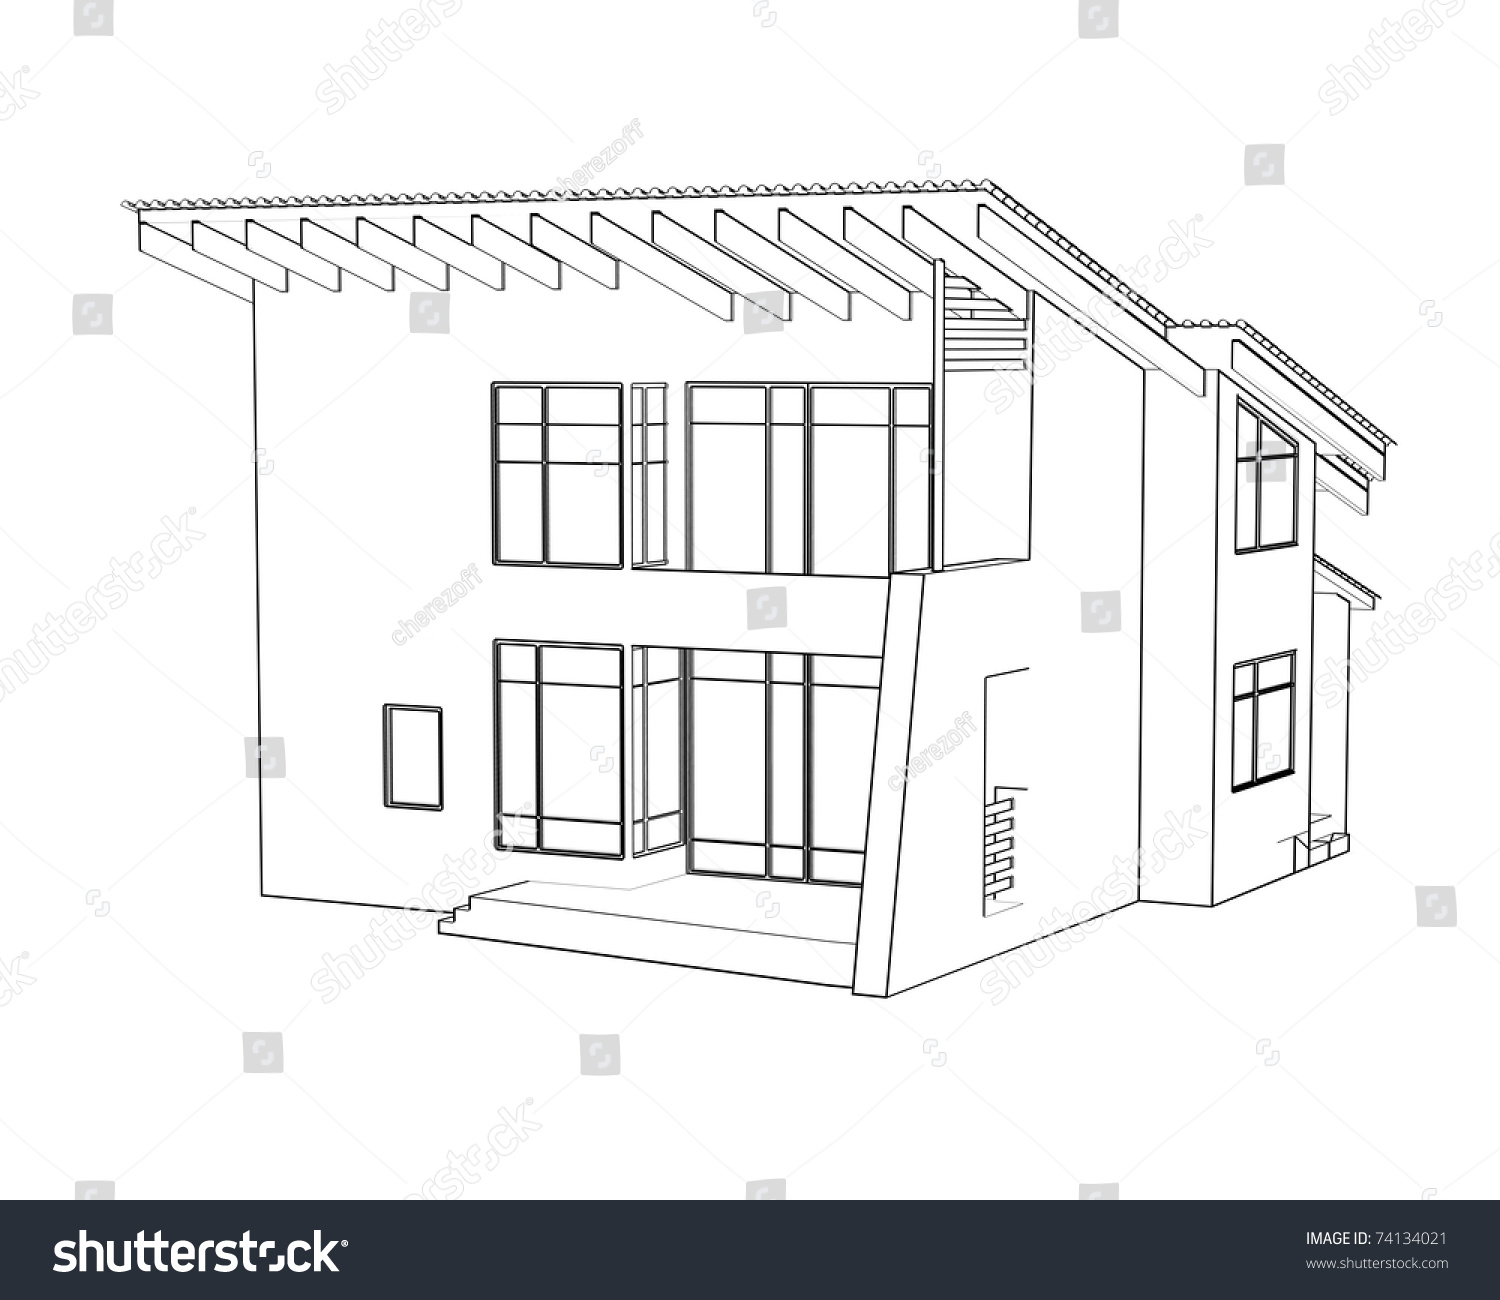 Exterior Architectural Drawings Modern House